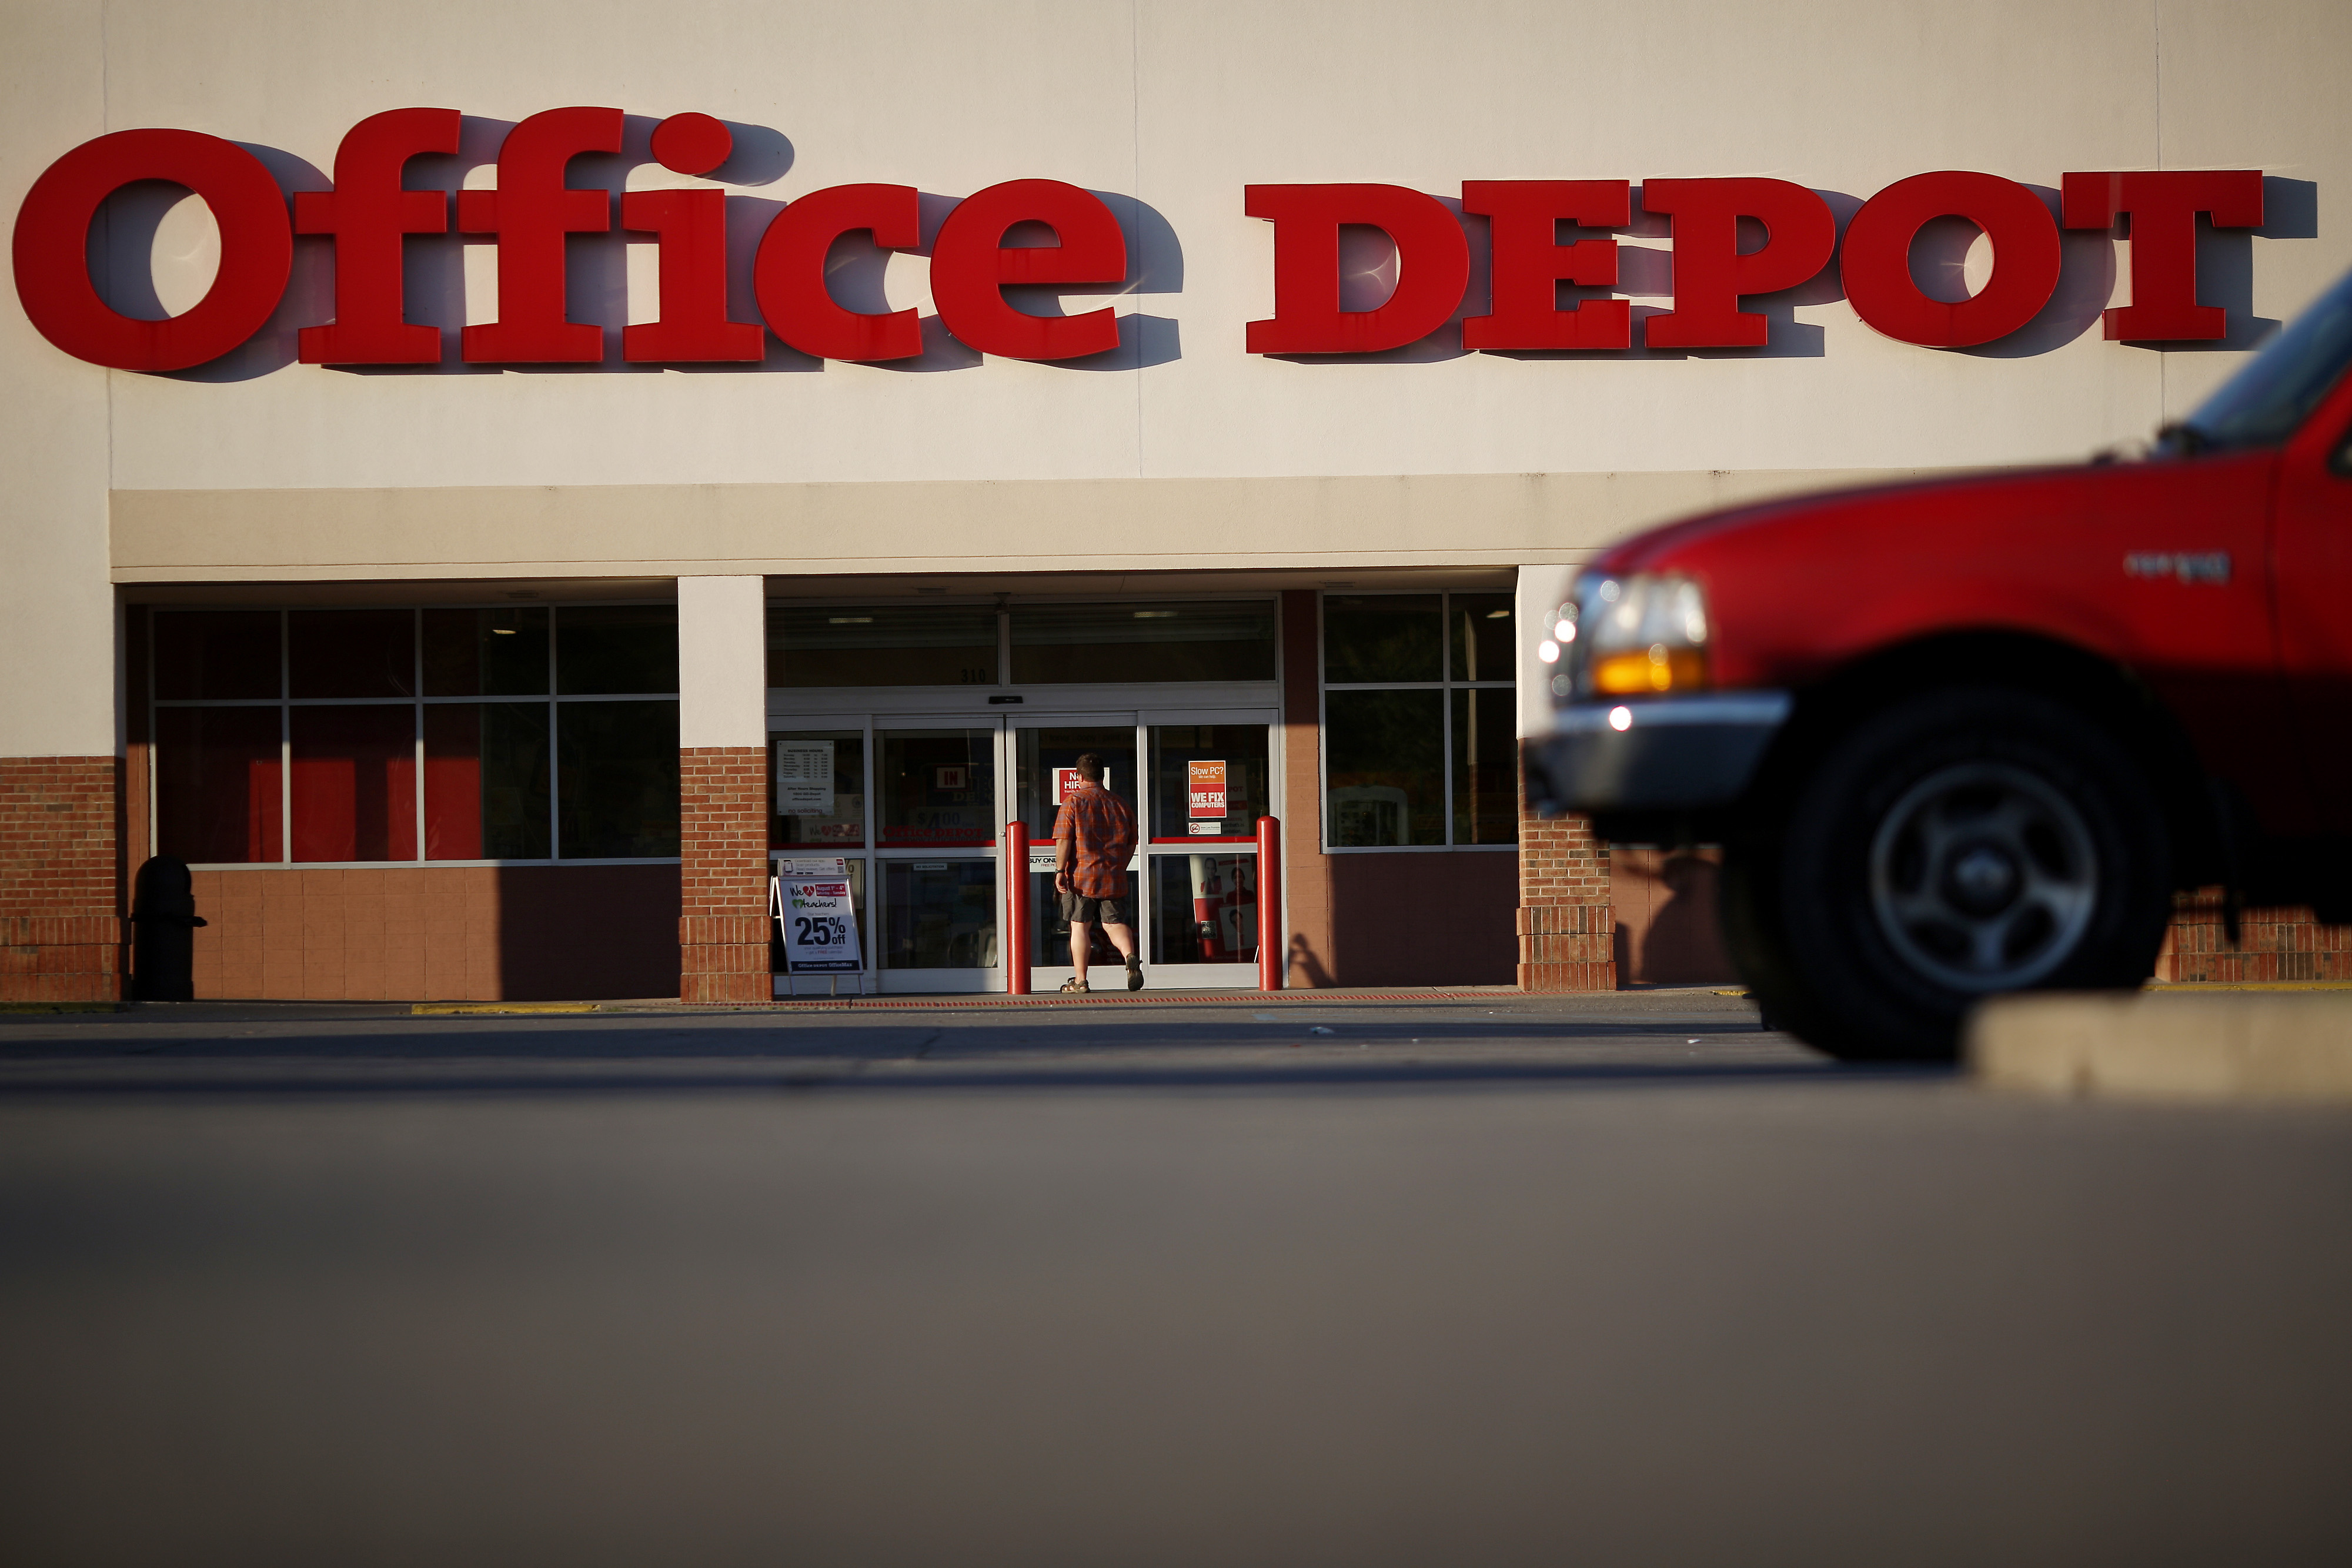 A customer walks toward the front entrance of an Office Depot retail store in New Albany, Indiana, U.S., on Friday, July 31, 2015. Office Depot's next quarterly earnings are expected to be released on Tuesday August 4, 2015. Photographer: Luke Sharrett/Bloomberg